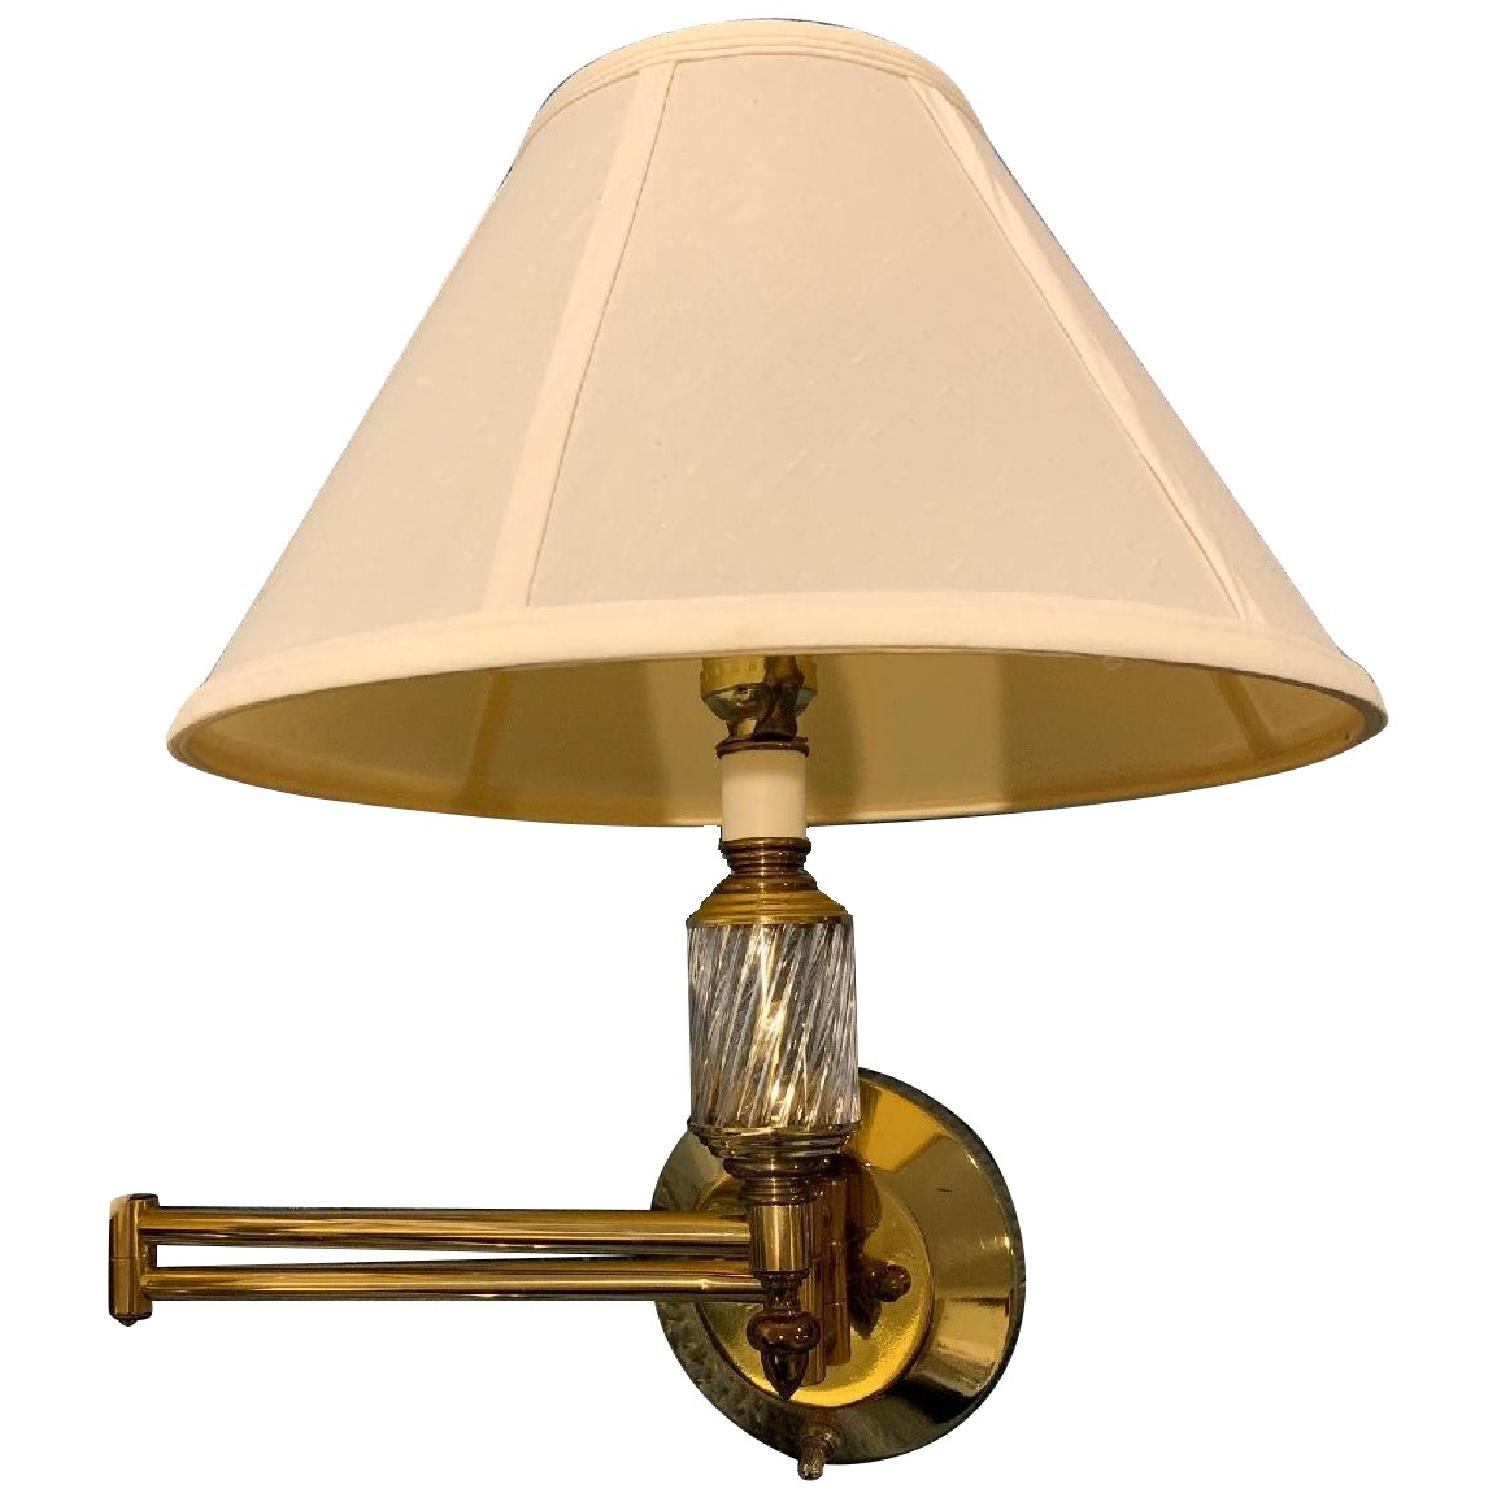 Brass Swing Arm Wall Lamps - image-0